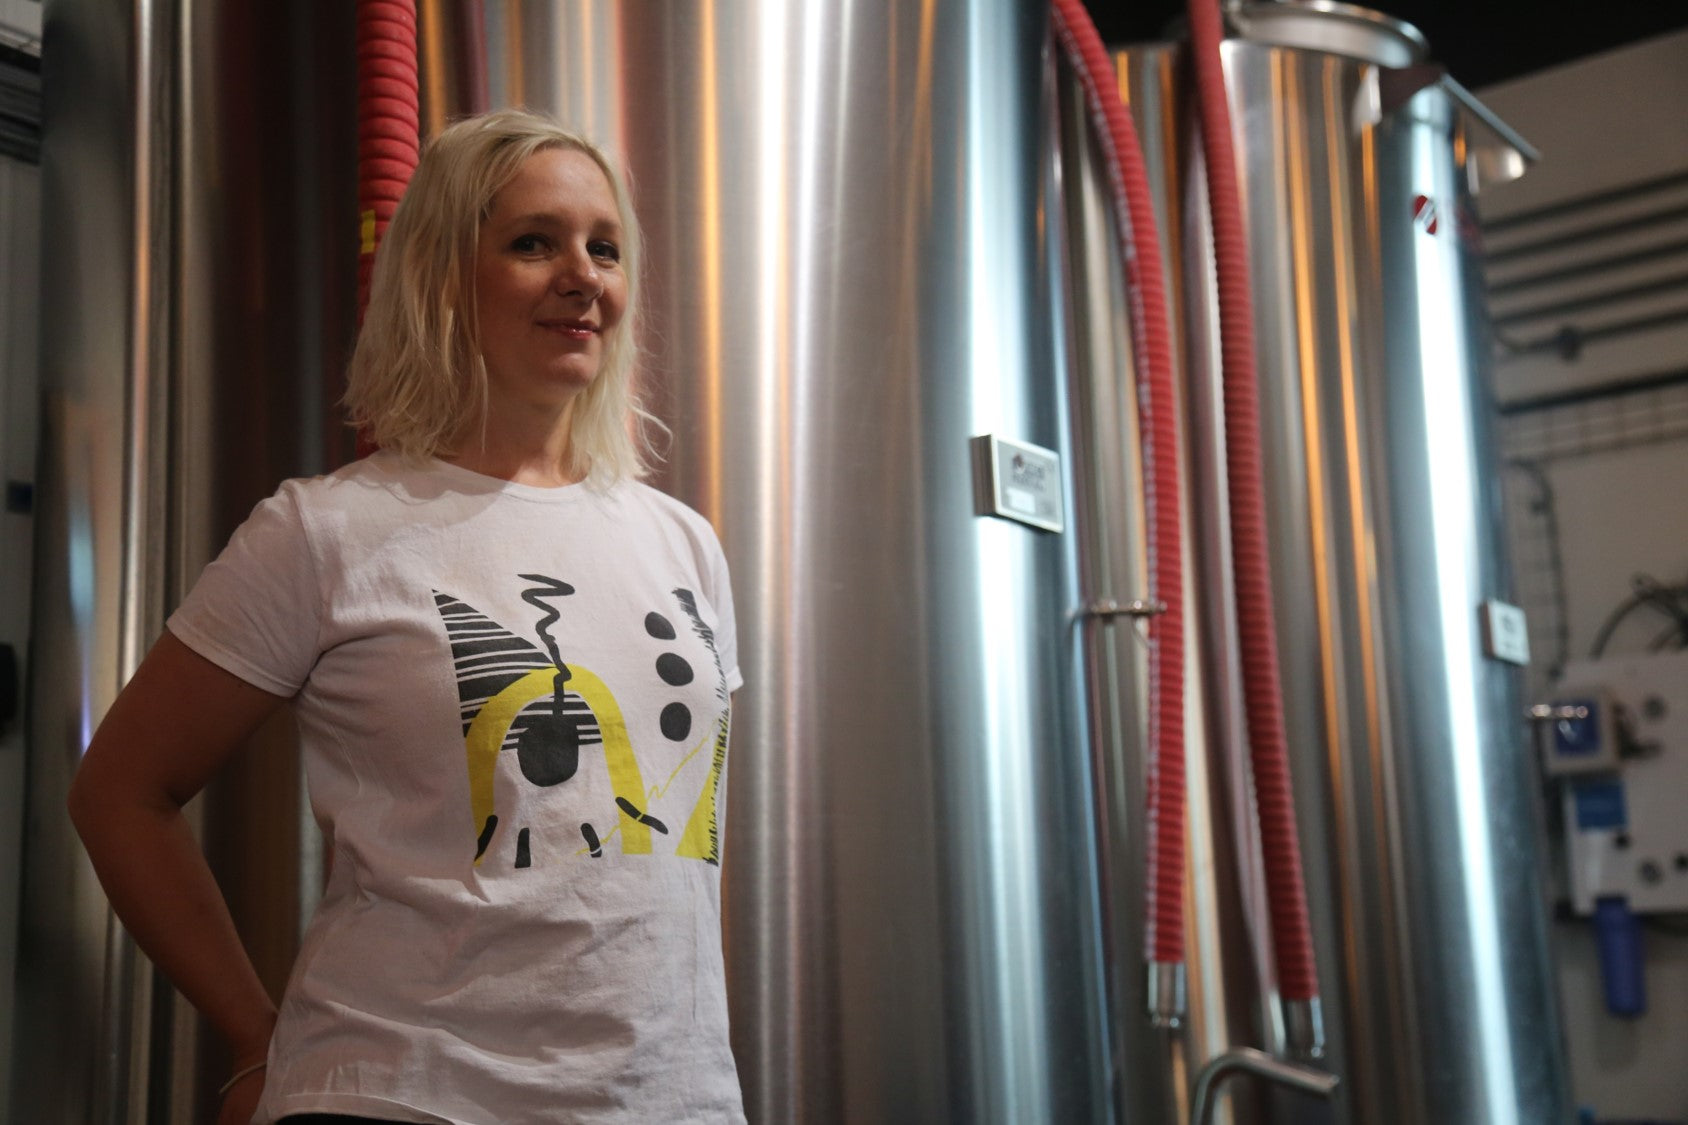 Jane LeBlond brewing beer